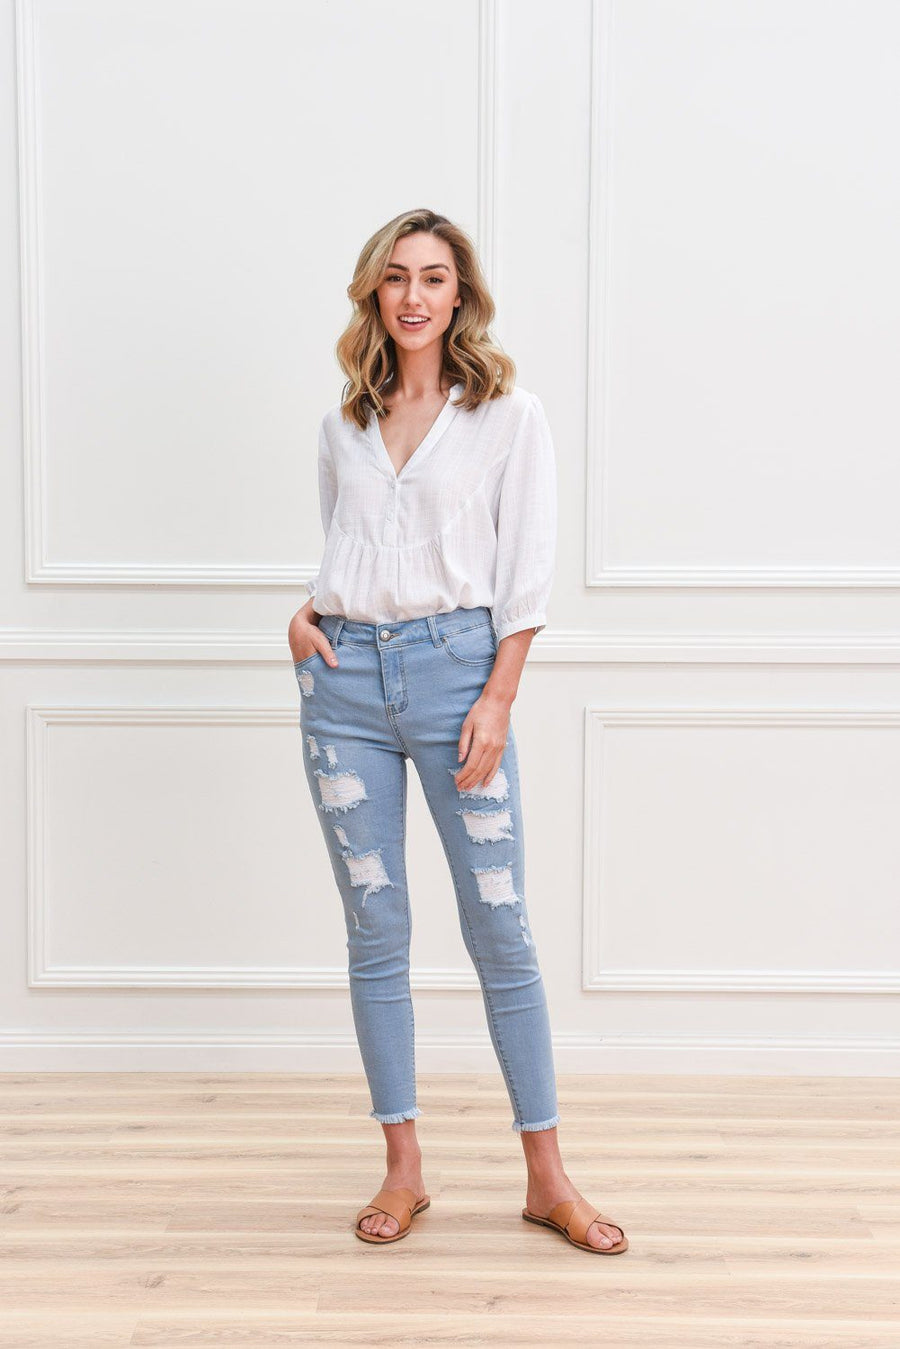 Tammy Ripped Jeans Jeans Gray Label